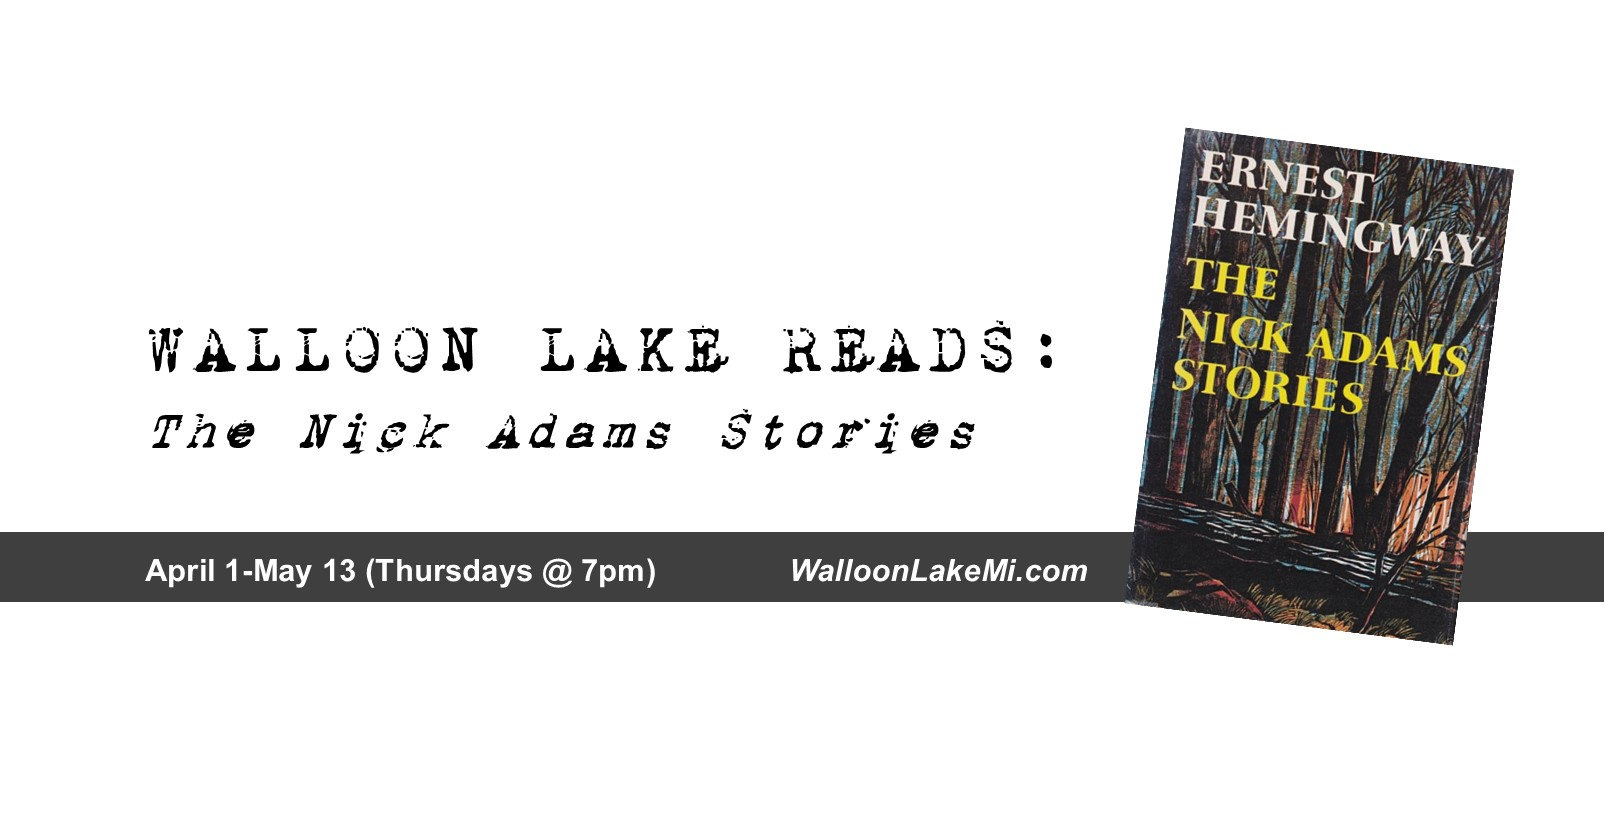 Grab a Book and Join Walloon Lake Reads: The Nick Adams Stories